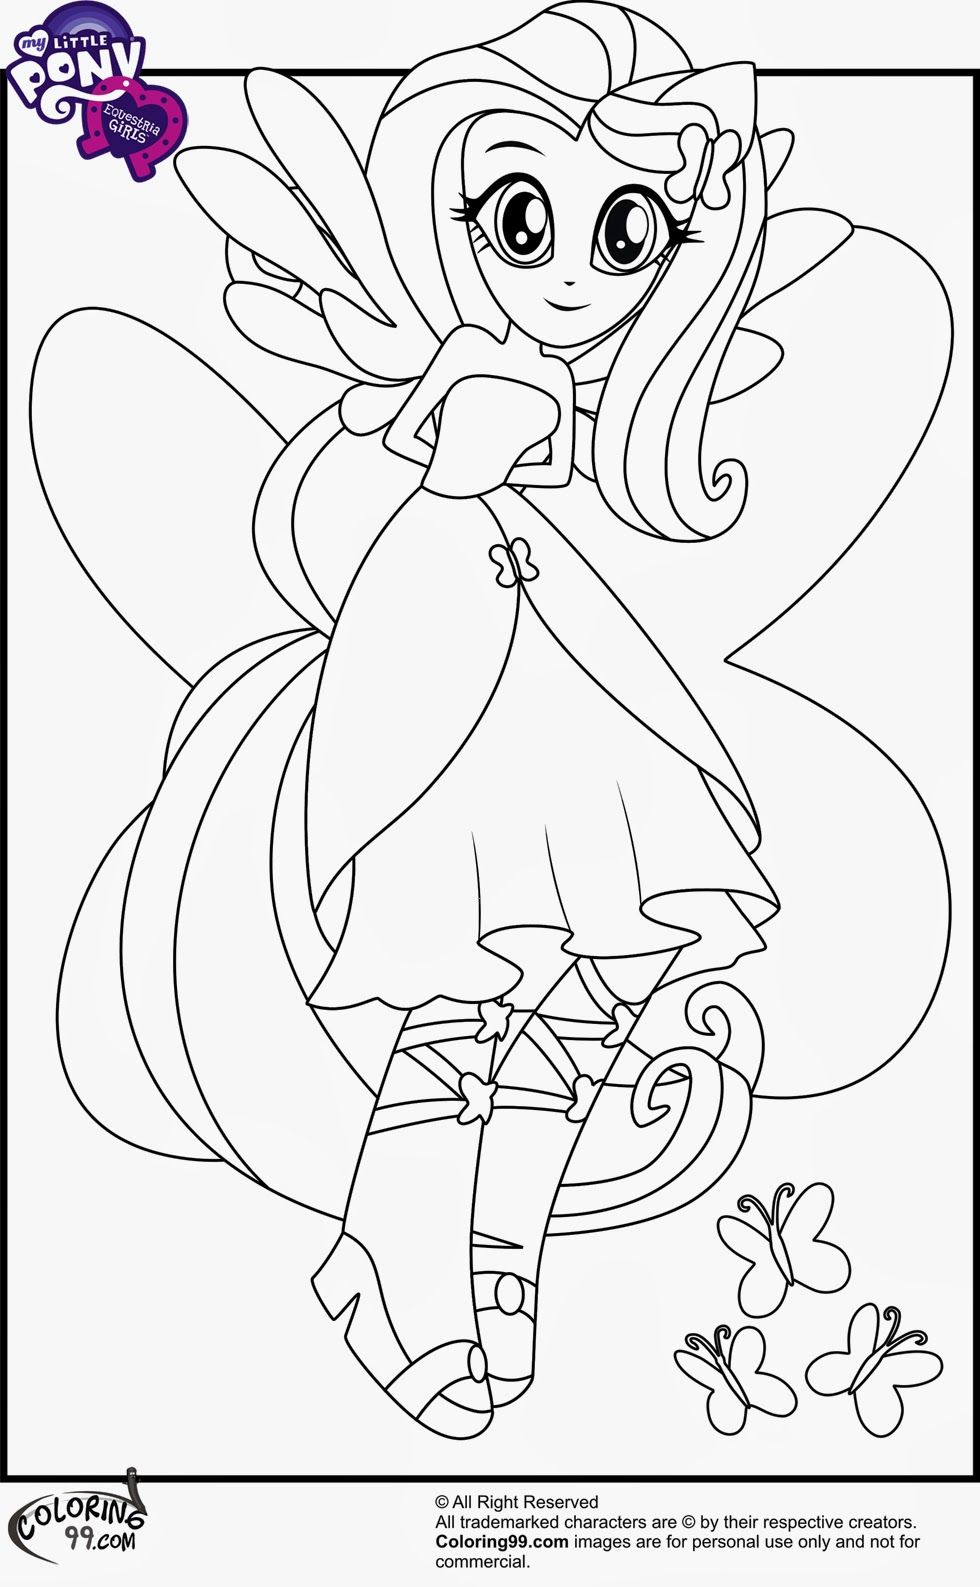 Mlp Equestria Girls Coloring Pages Equestria Girls Imágenes